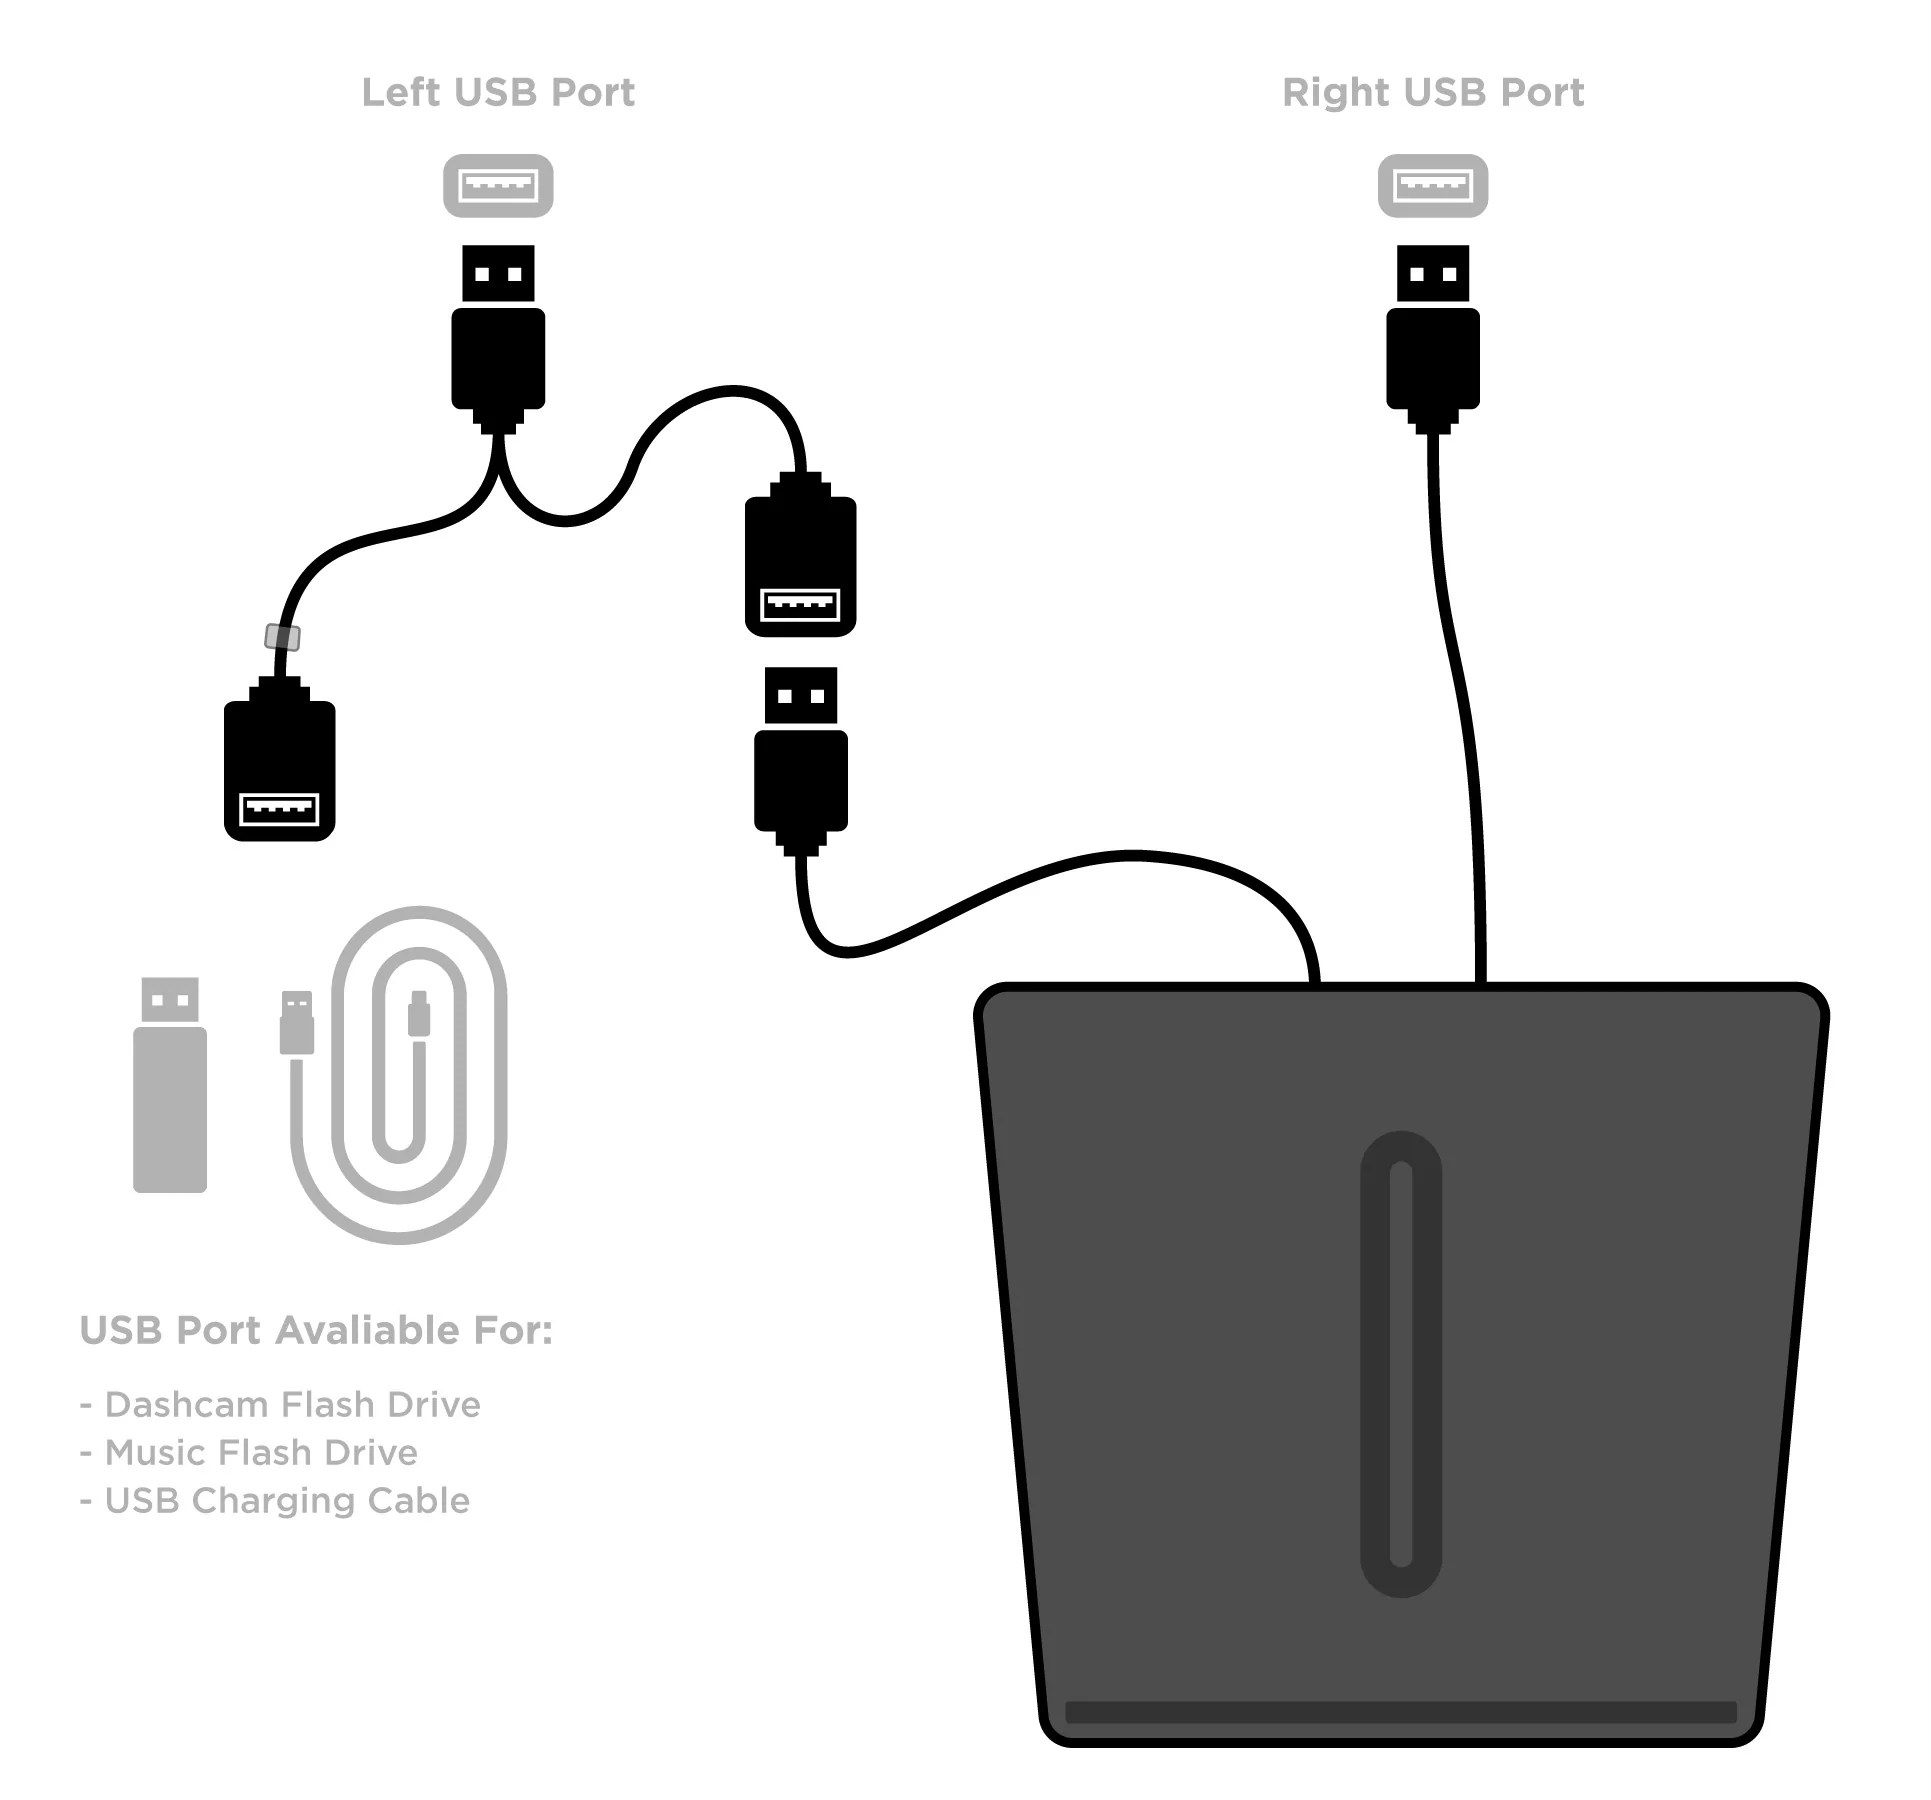 hight resolution of the clear gray tag on the left cable of the usb splitter picture below also appears on the actual usb splitter and indicates the usb port that supports both